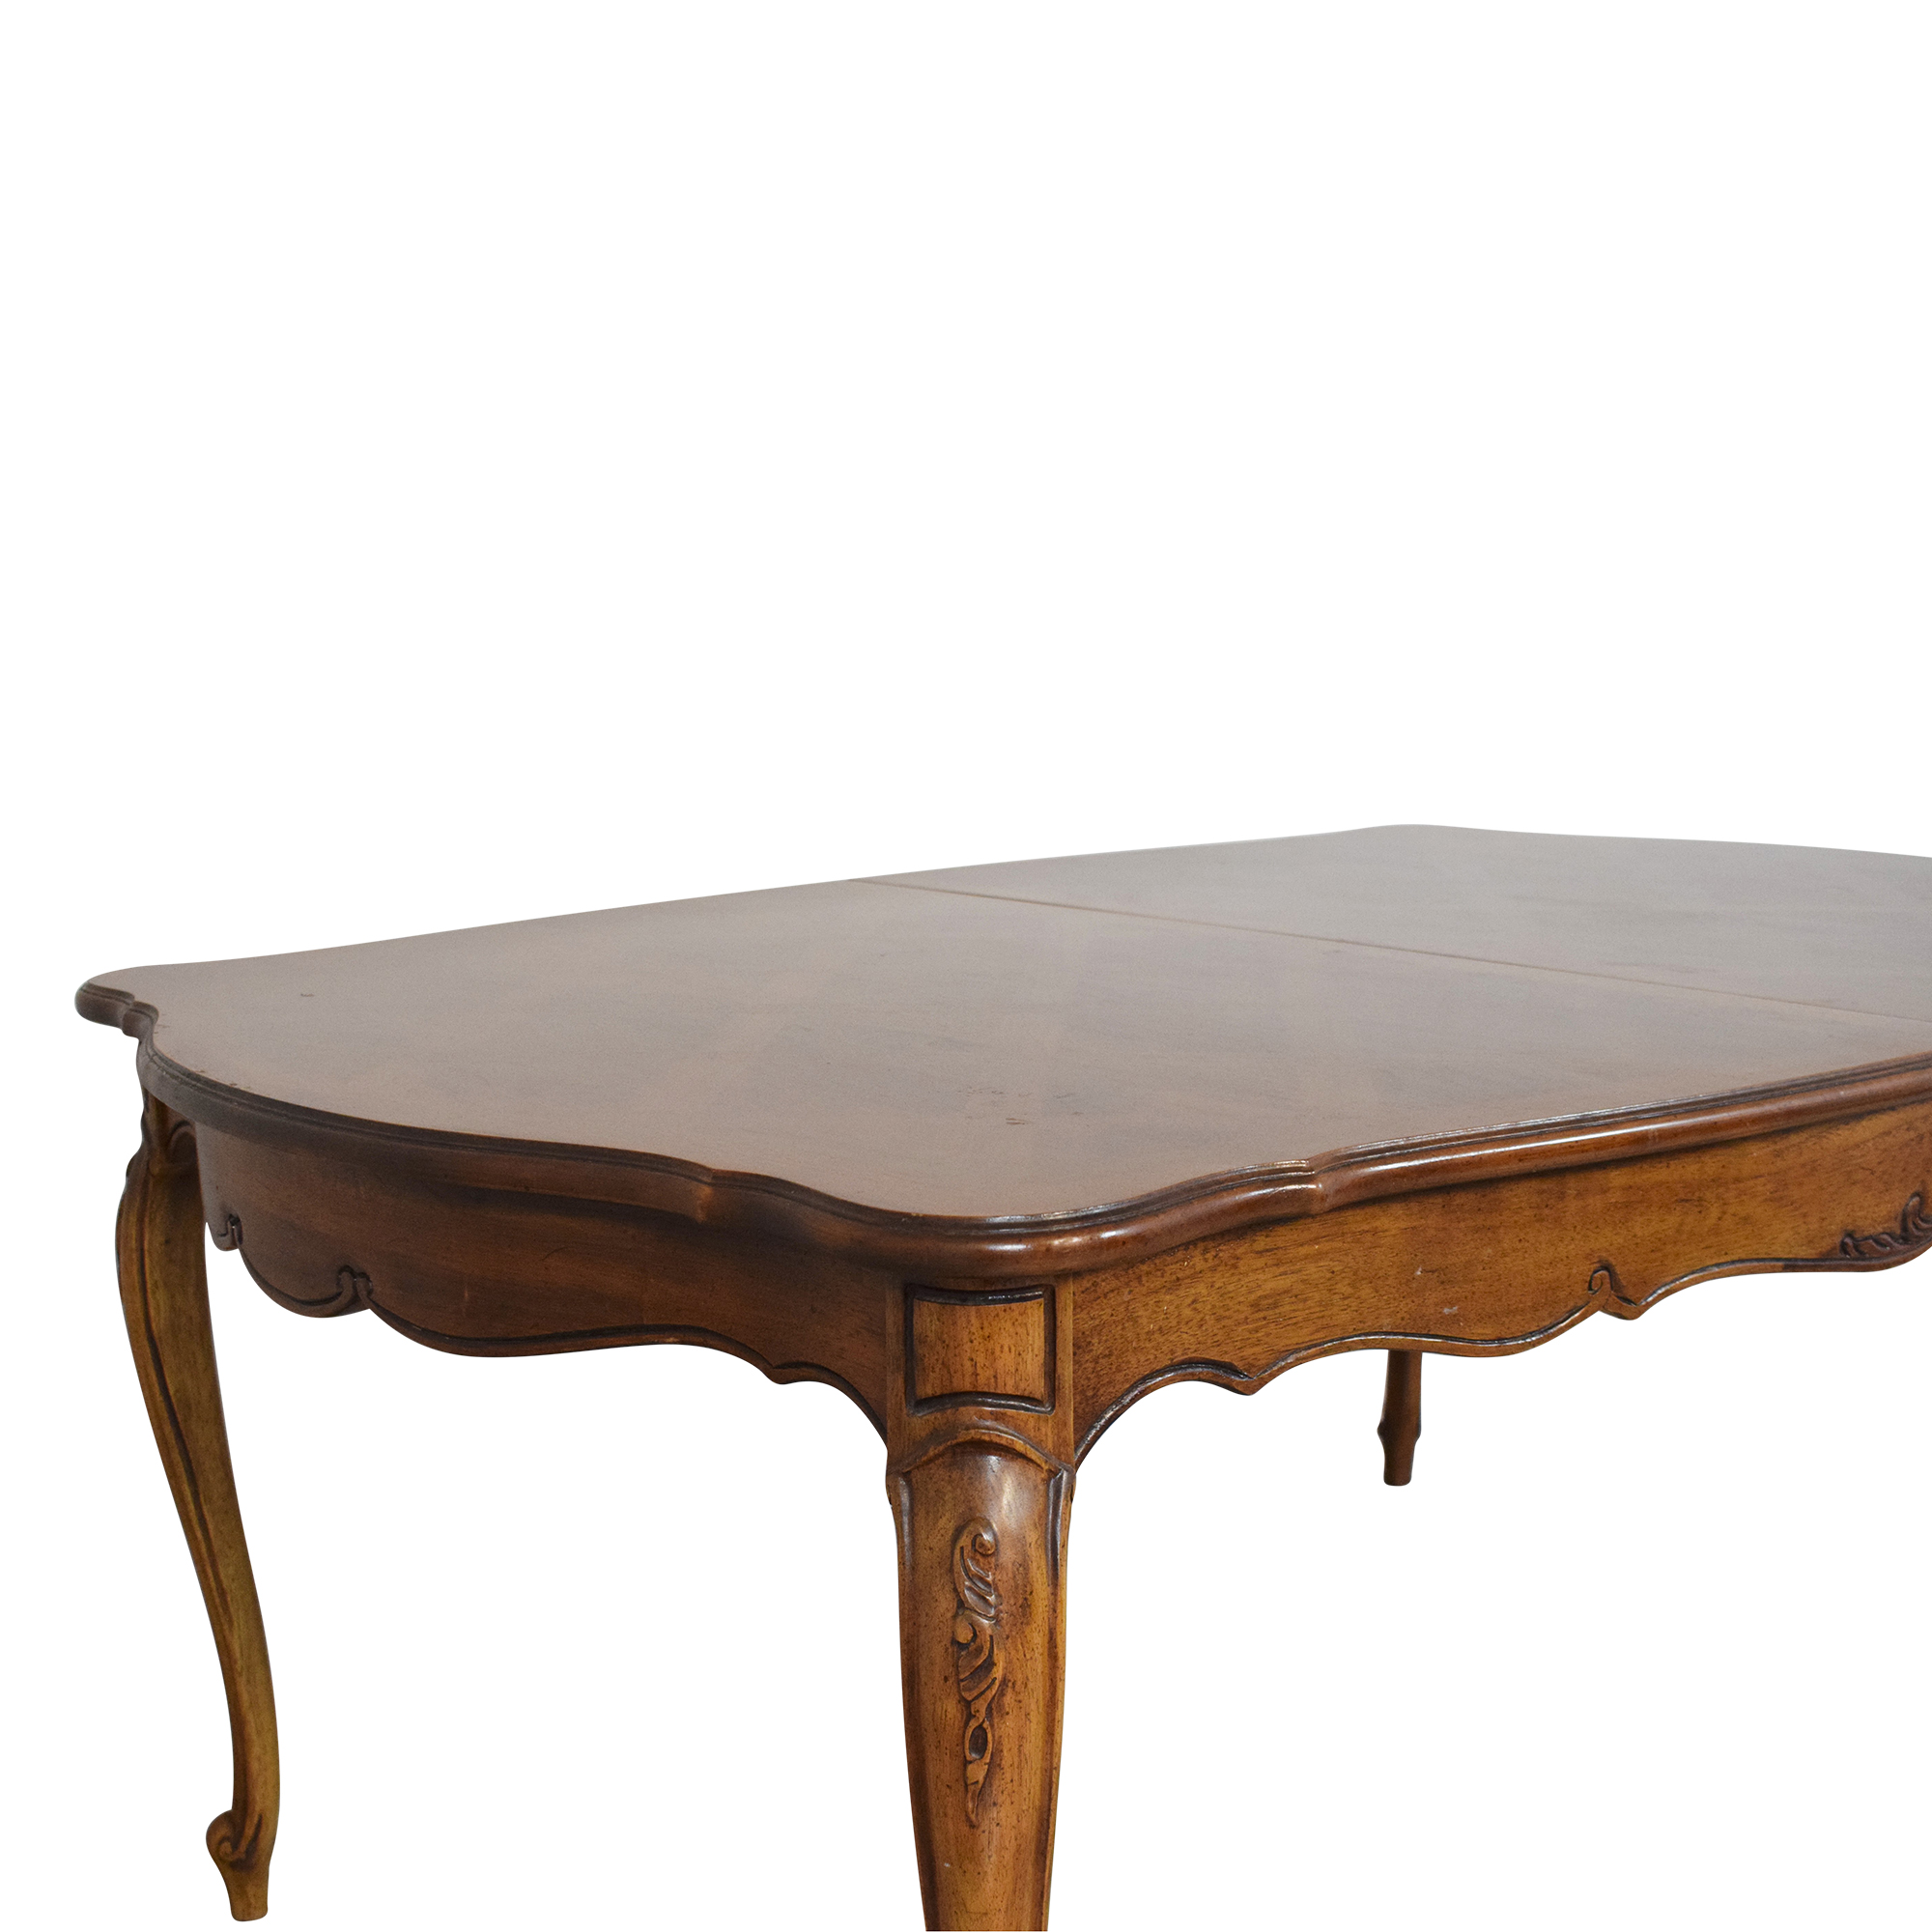 Thomasville Thomasville Expandable Dining Table ct